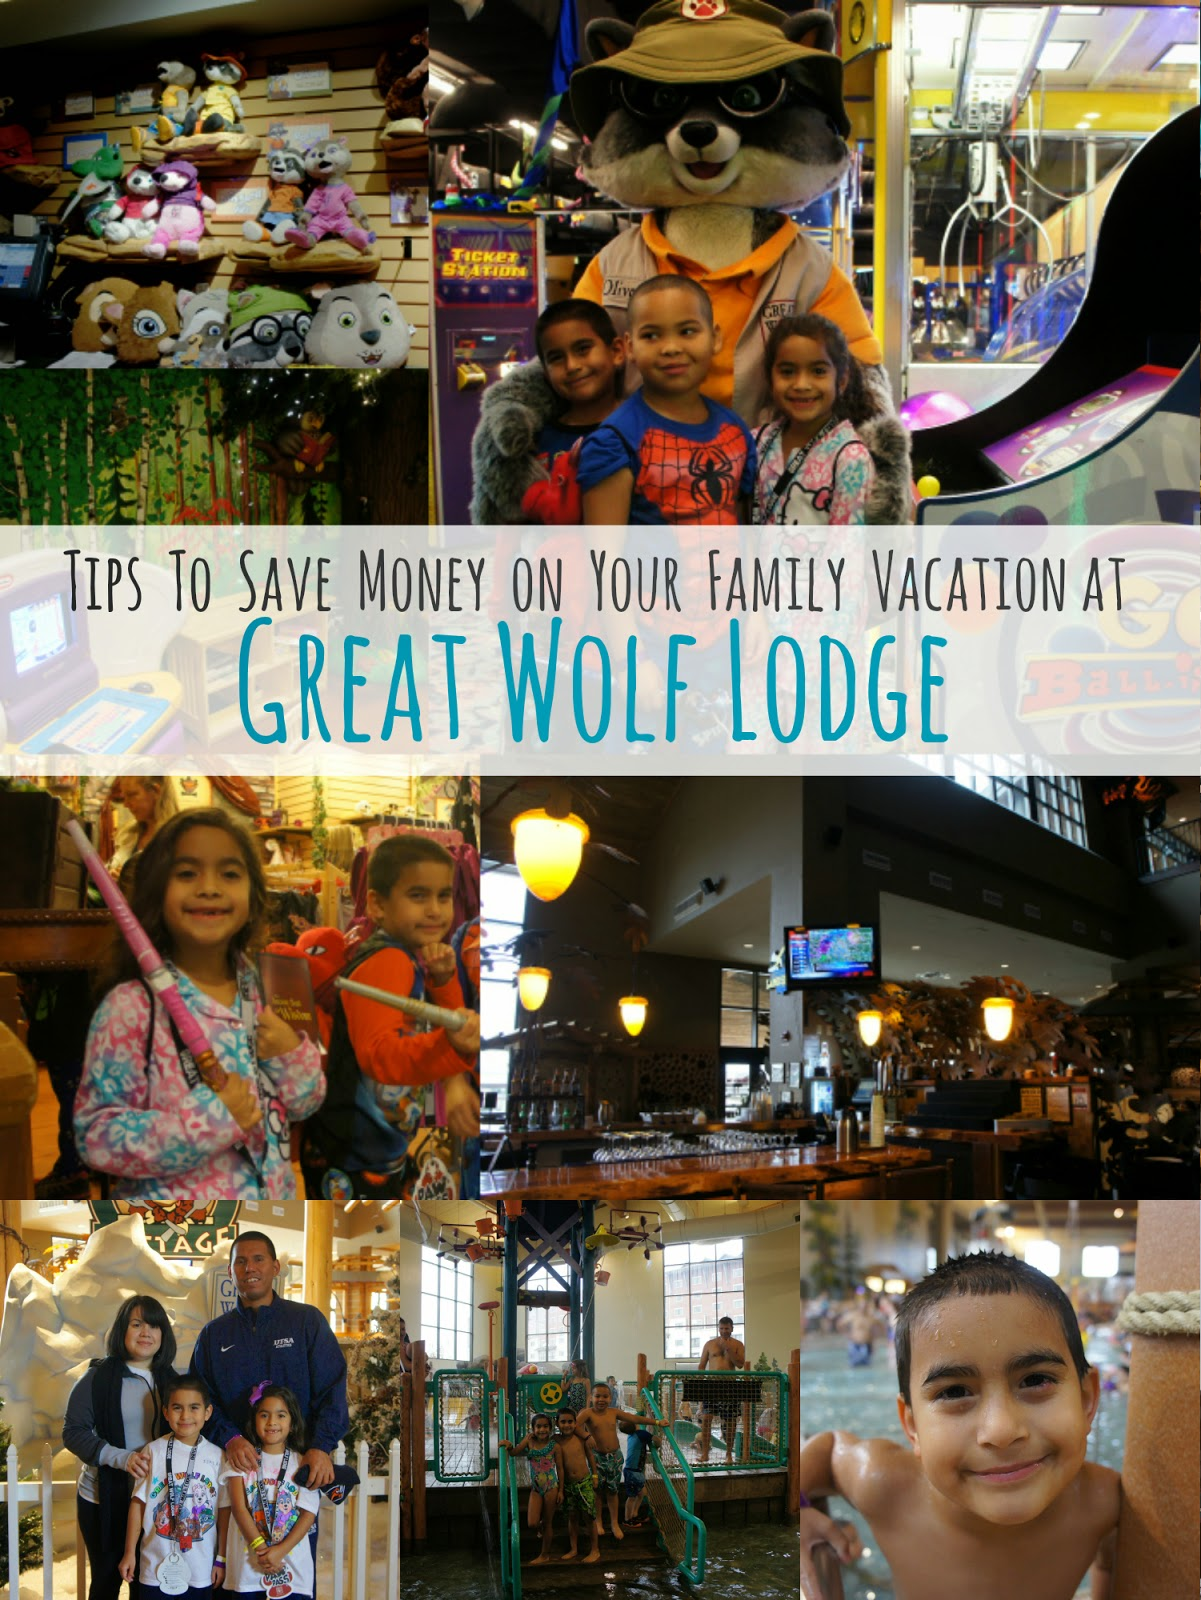 Family Vacations at the Great Wolf Lodge with Indoor Water Park in Grapevine, Texas